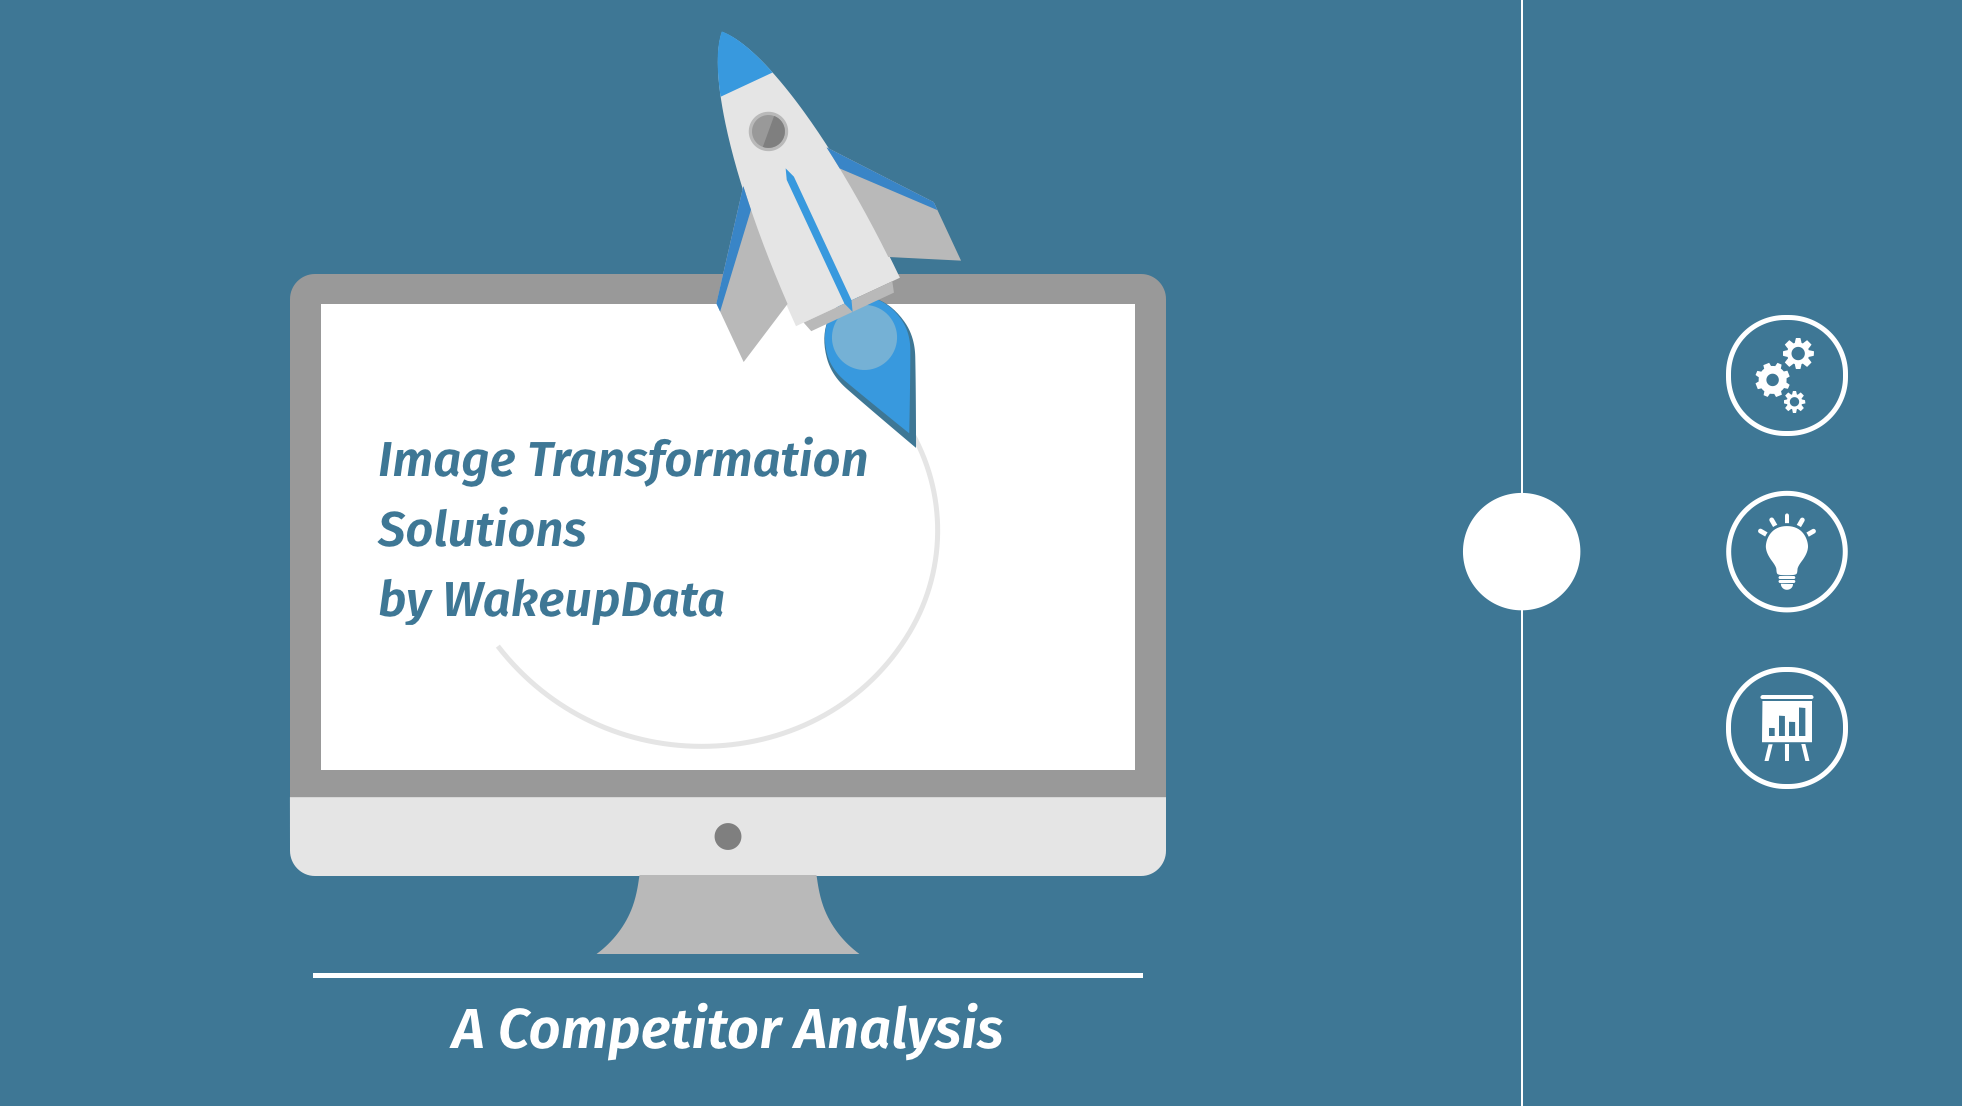 Image Transformation tools for ecommerce - Why choose WakeupData?